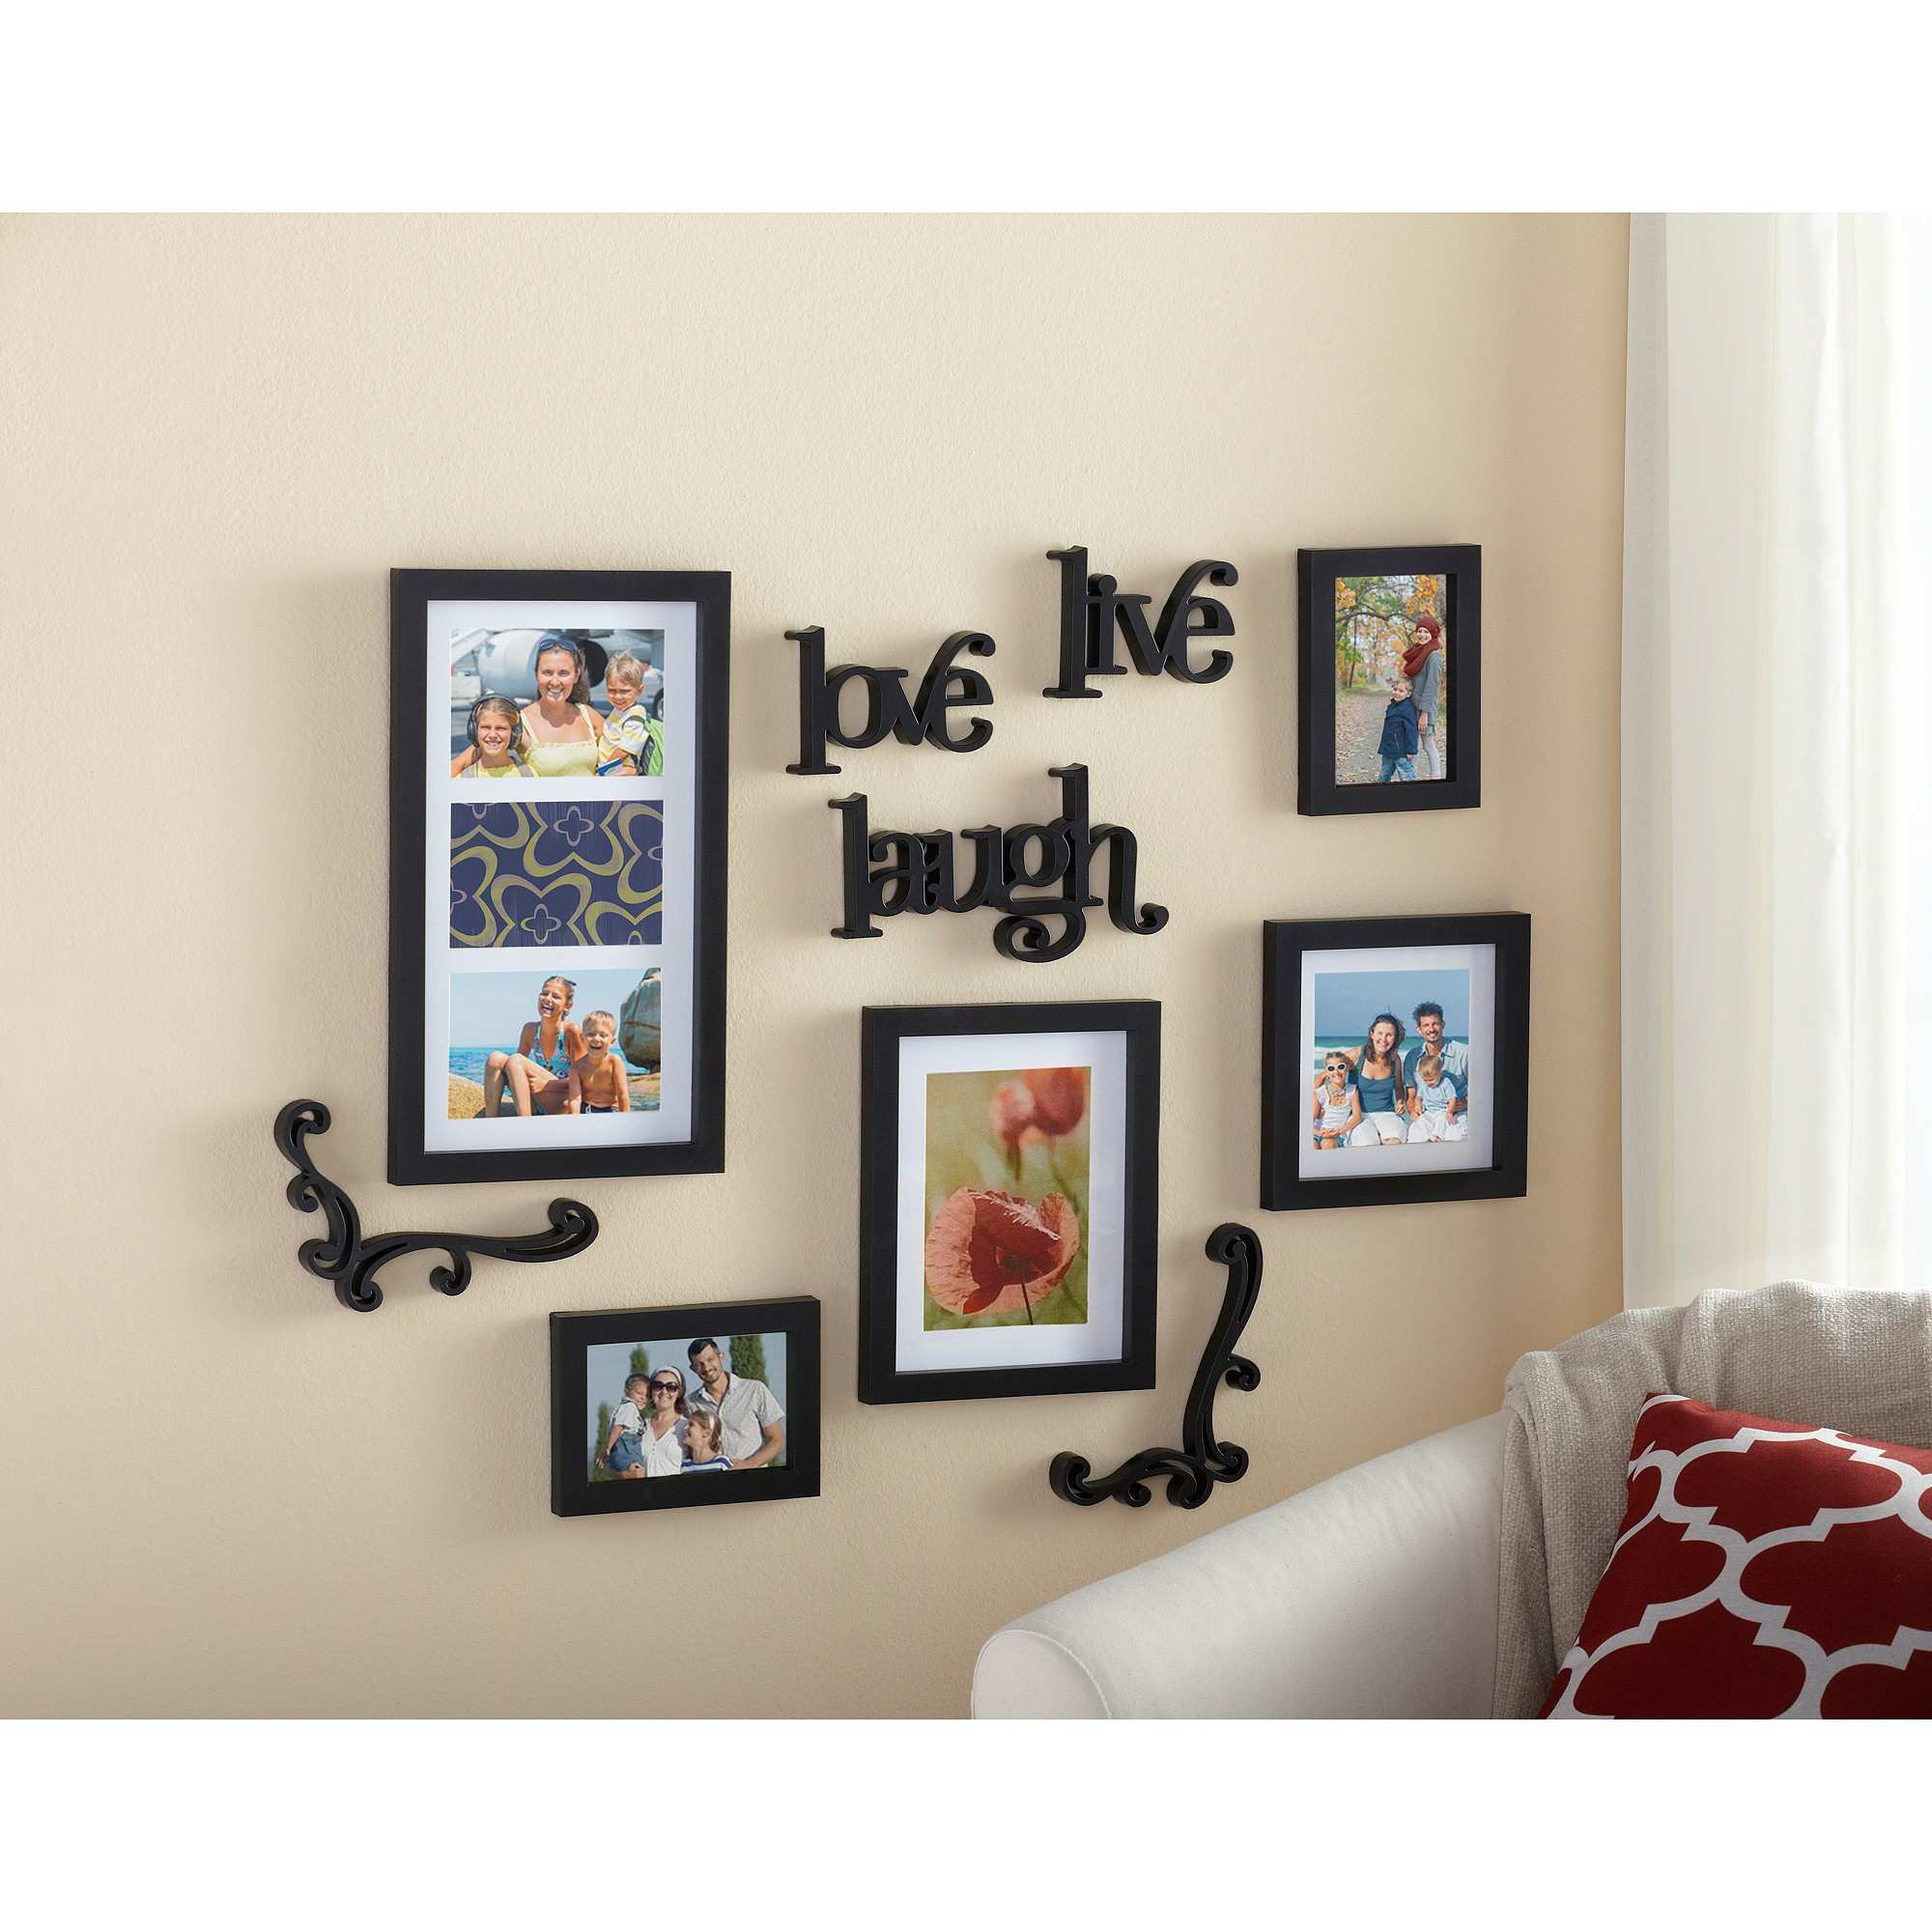 Captivating 10 Picture Frame Sets for Wall Decorating Design